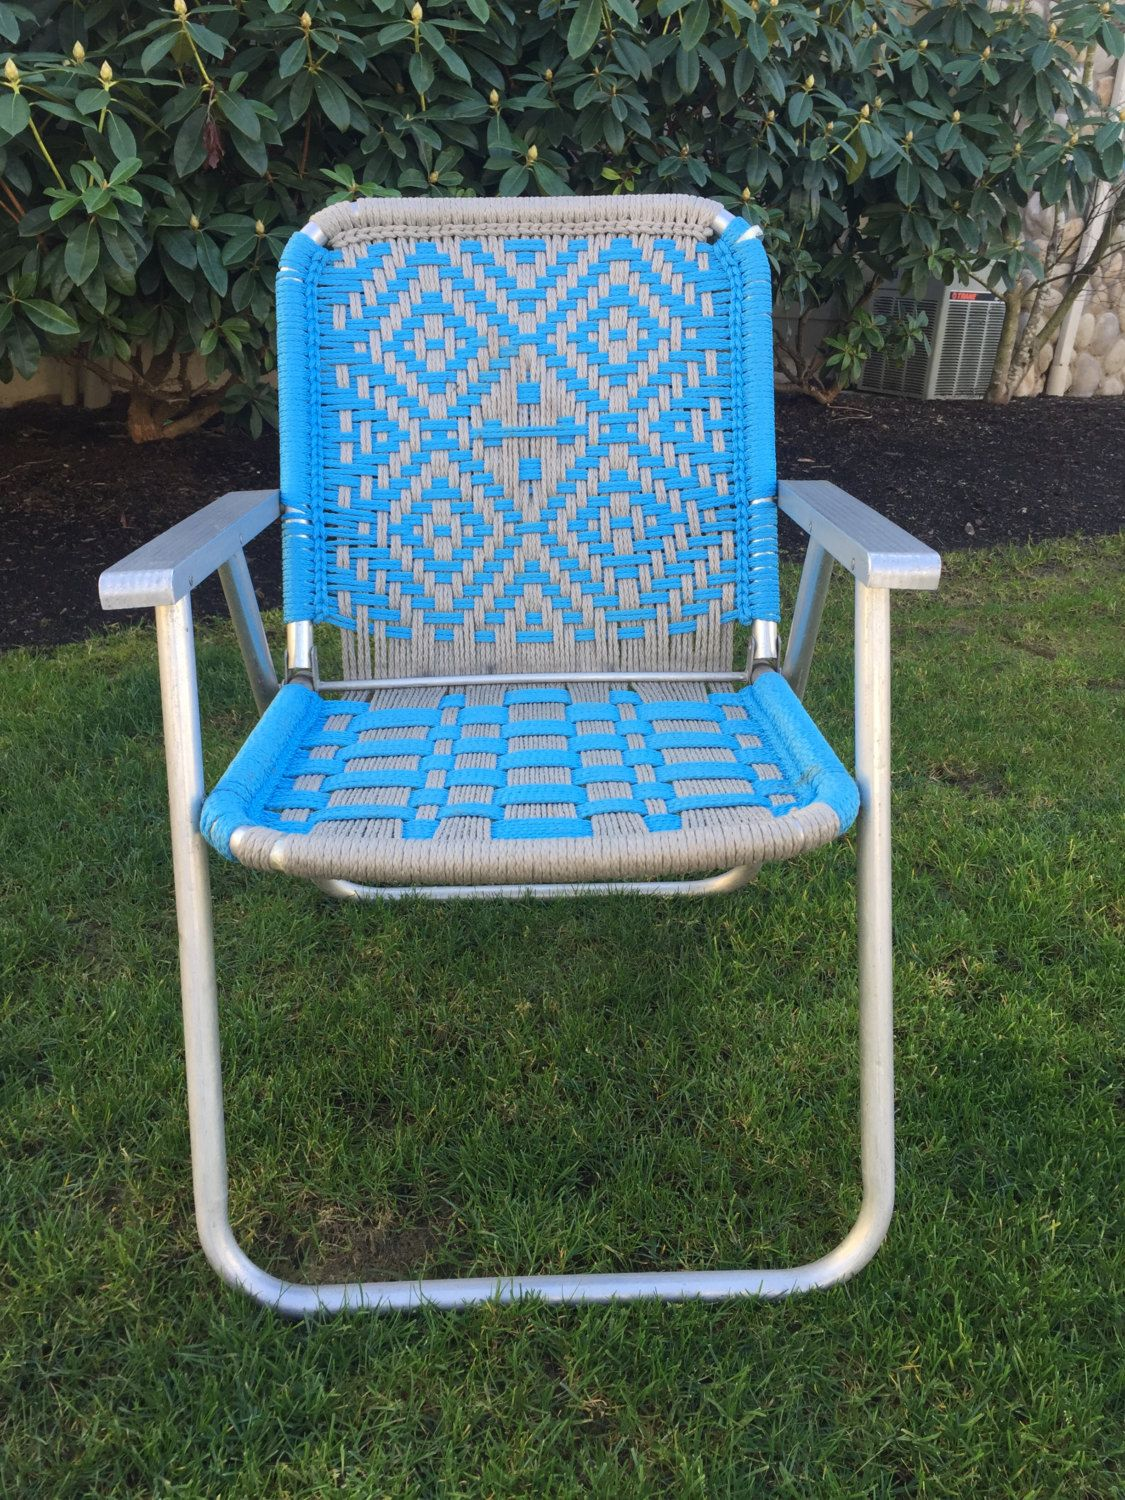 Vintage folding lawn chairs - Reserved John Vintage Macrame Lawn Chair Aluminum Macrame Chair Blue Lawn Chair Folding Lawn Chair Garden Chair Camping Chair